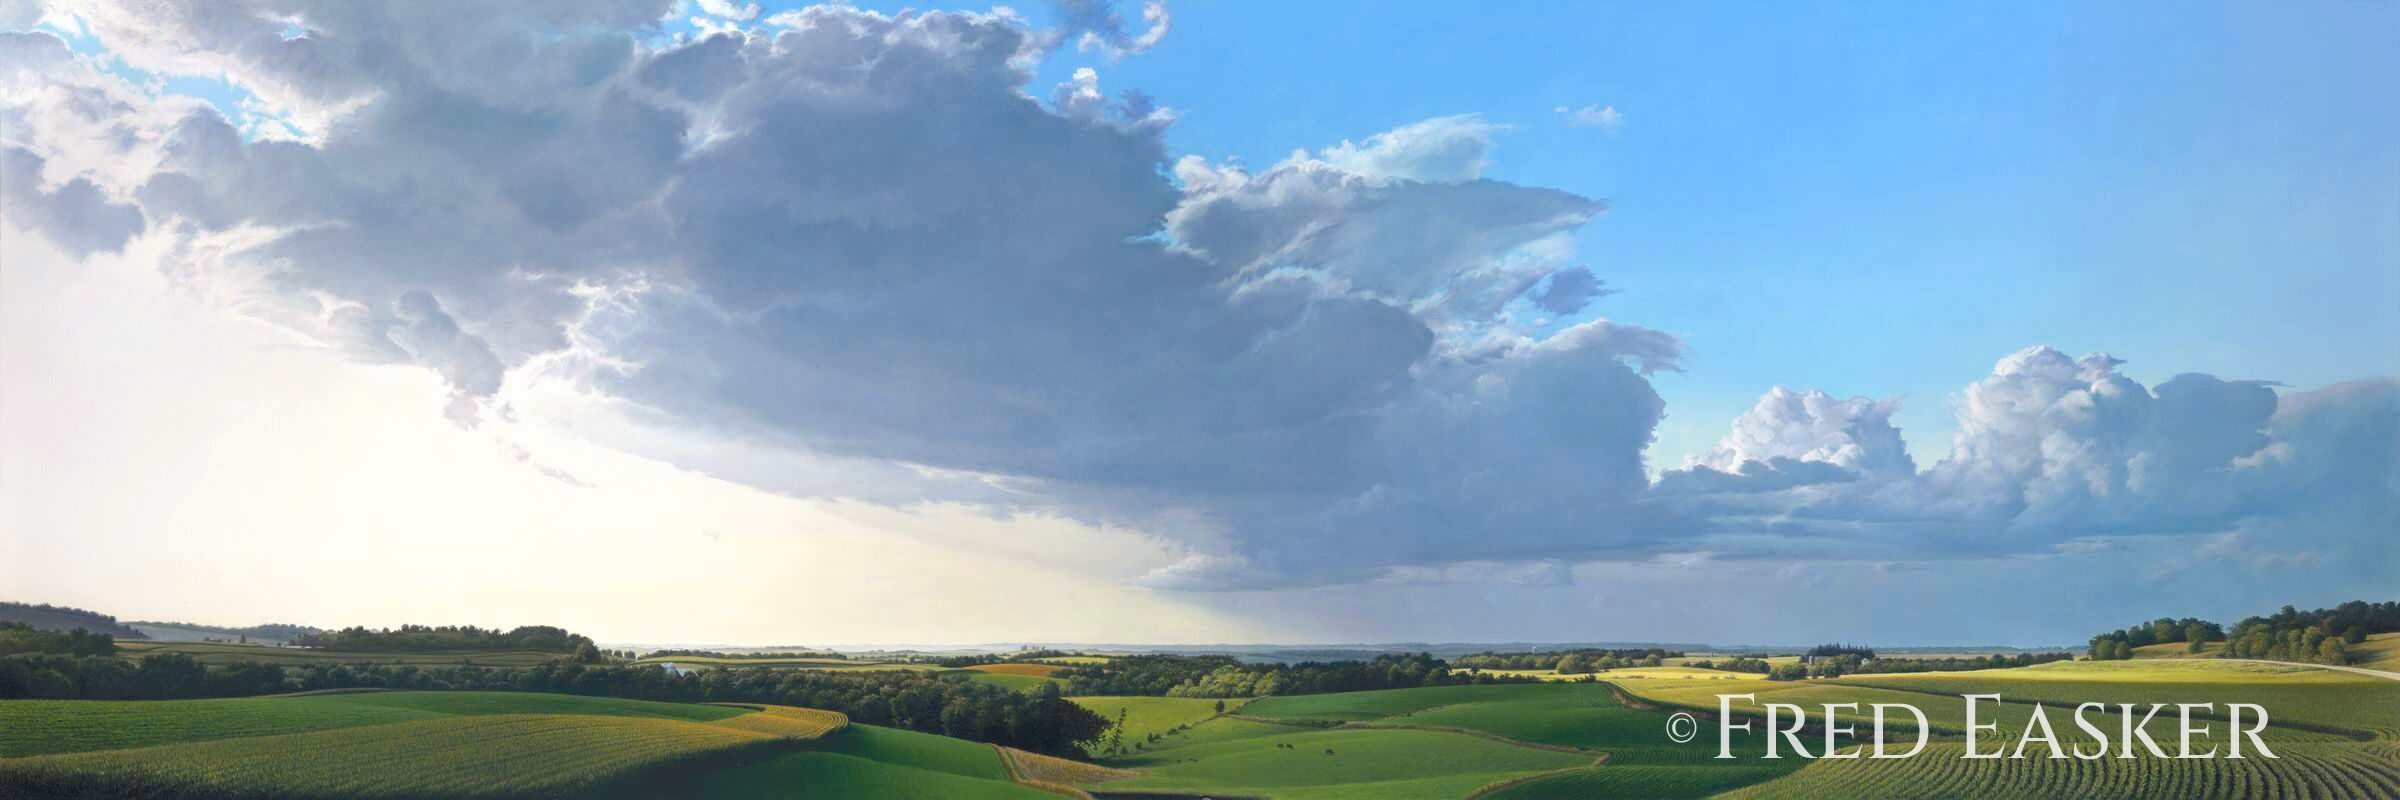 View From Hanover Road by Fred Easker